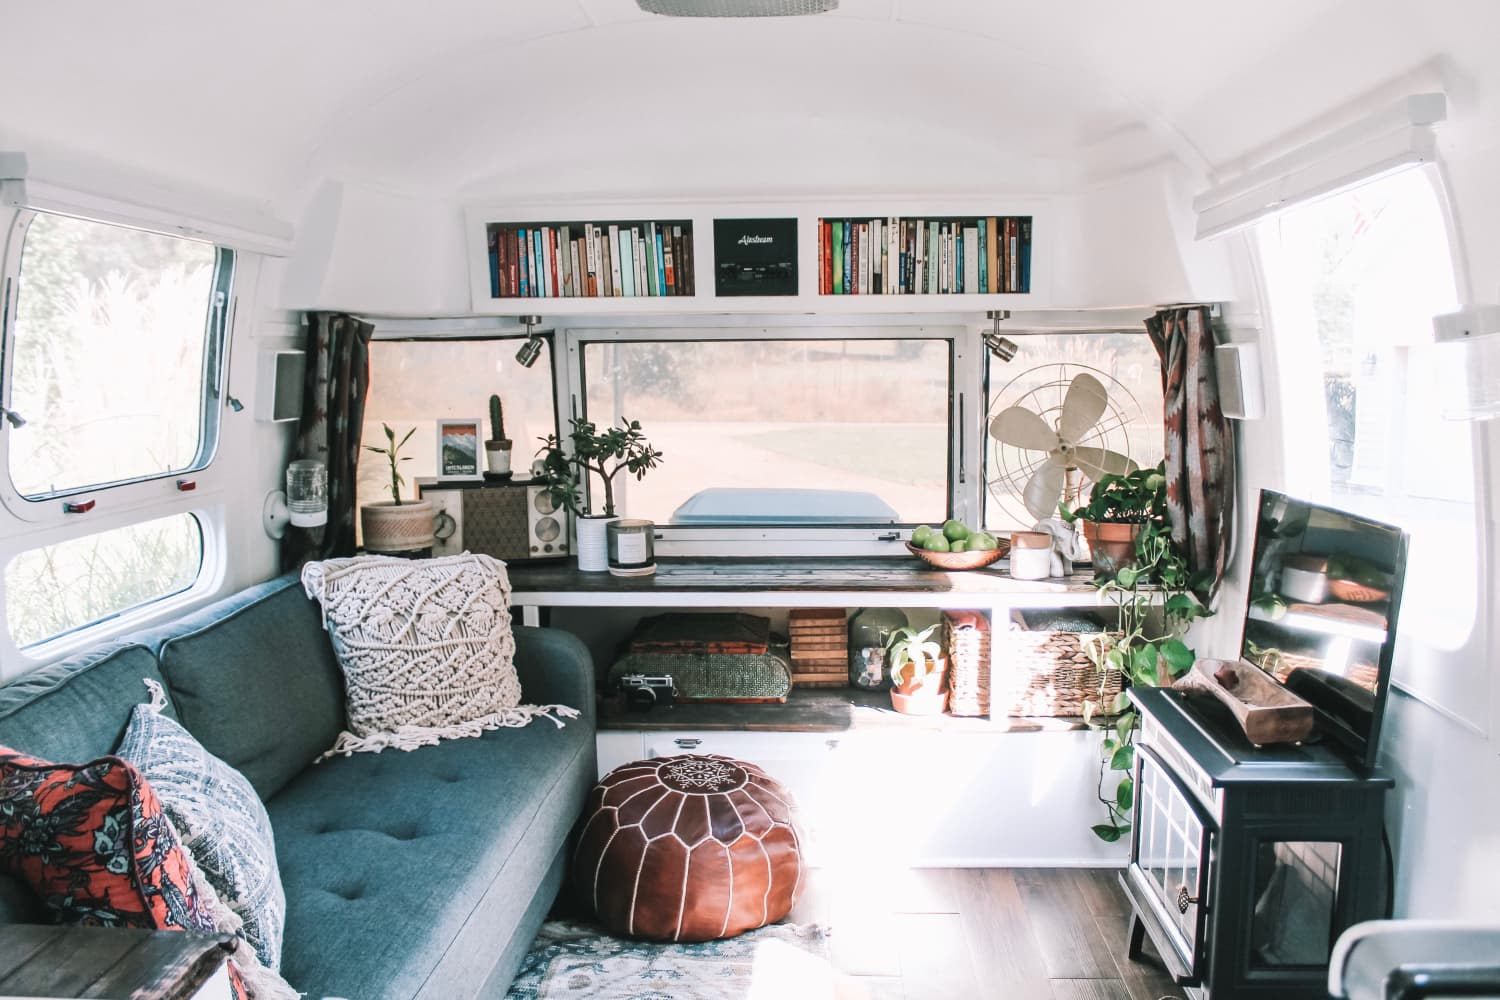 6 Major Dos and Don'ts of Decorating a Tiny House